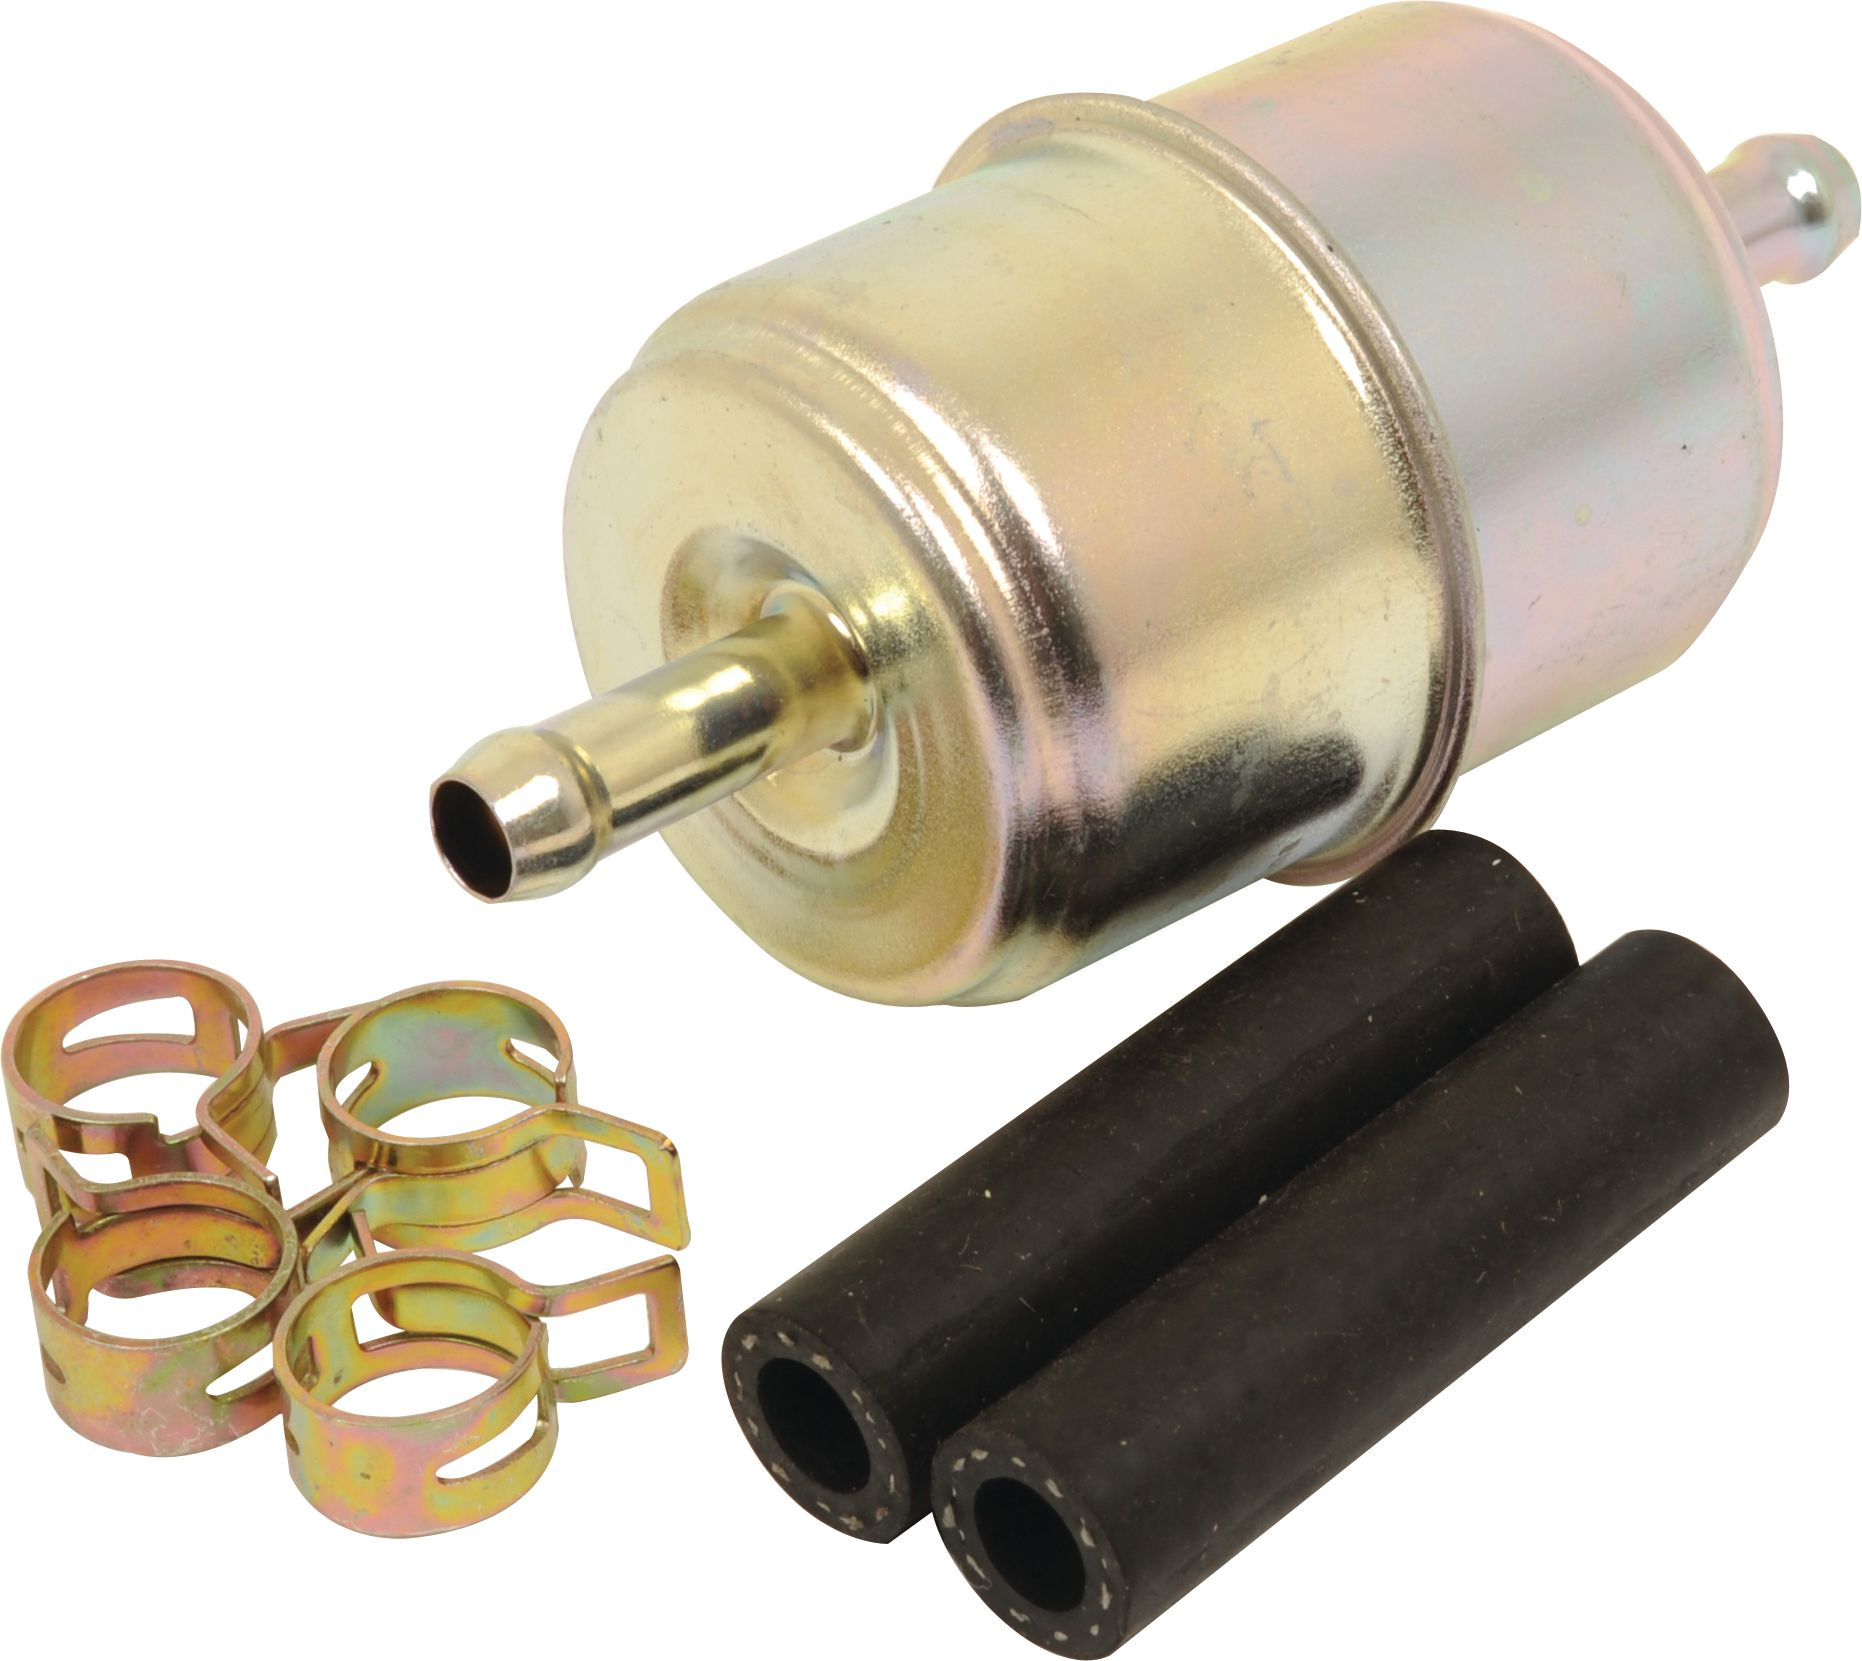 Buy Kubota Filters Spare Parts Free Uk Delivery Any Part Fuel Filter Ff149 76882